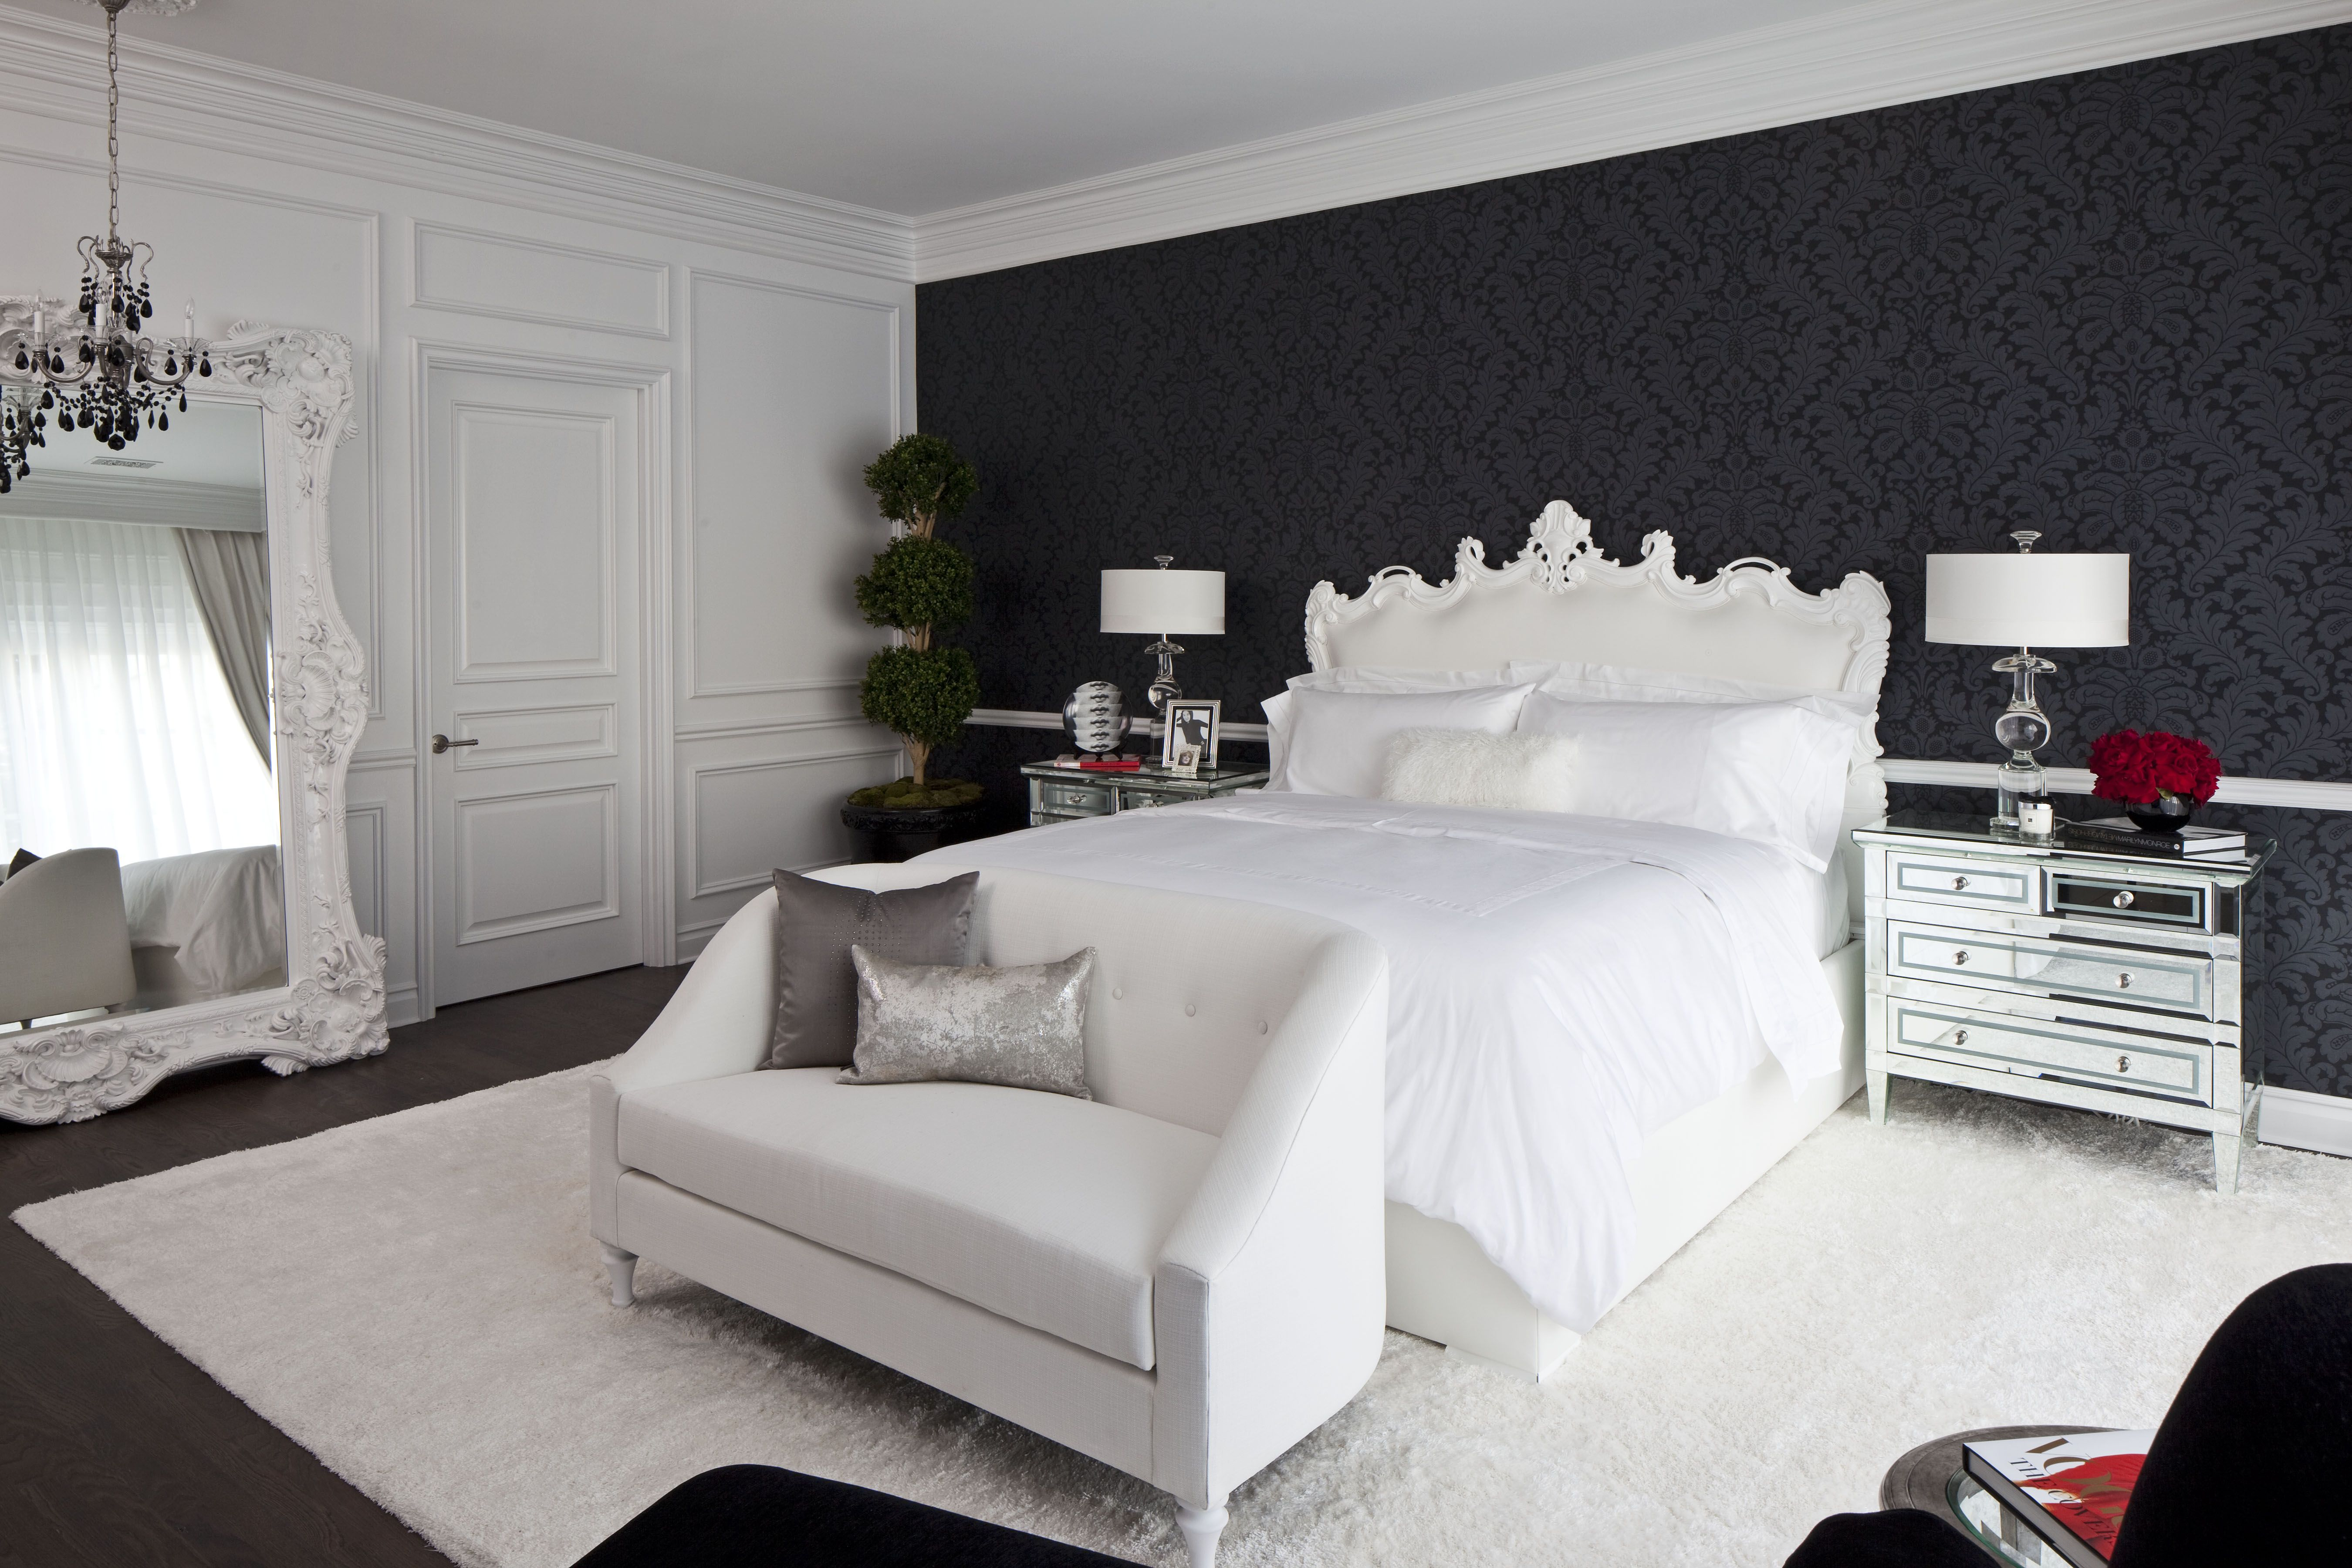 Black And White Bedroom Ideas 36 Black White Bedrooms Photos And Ideas For Bedrooms With